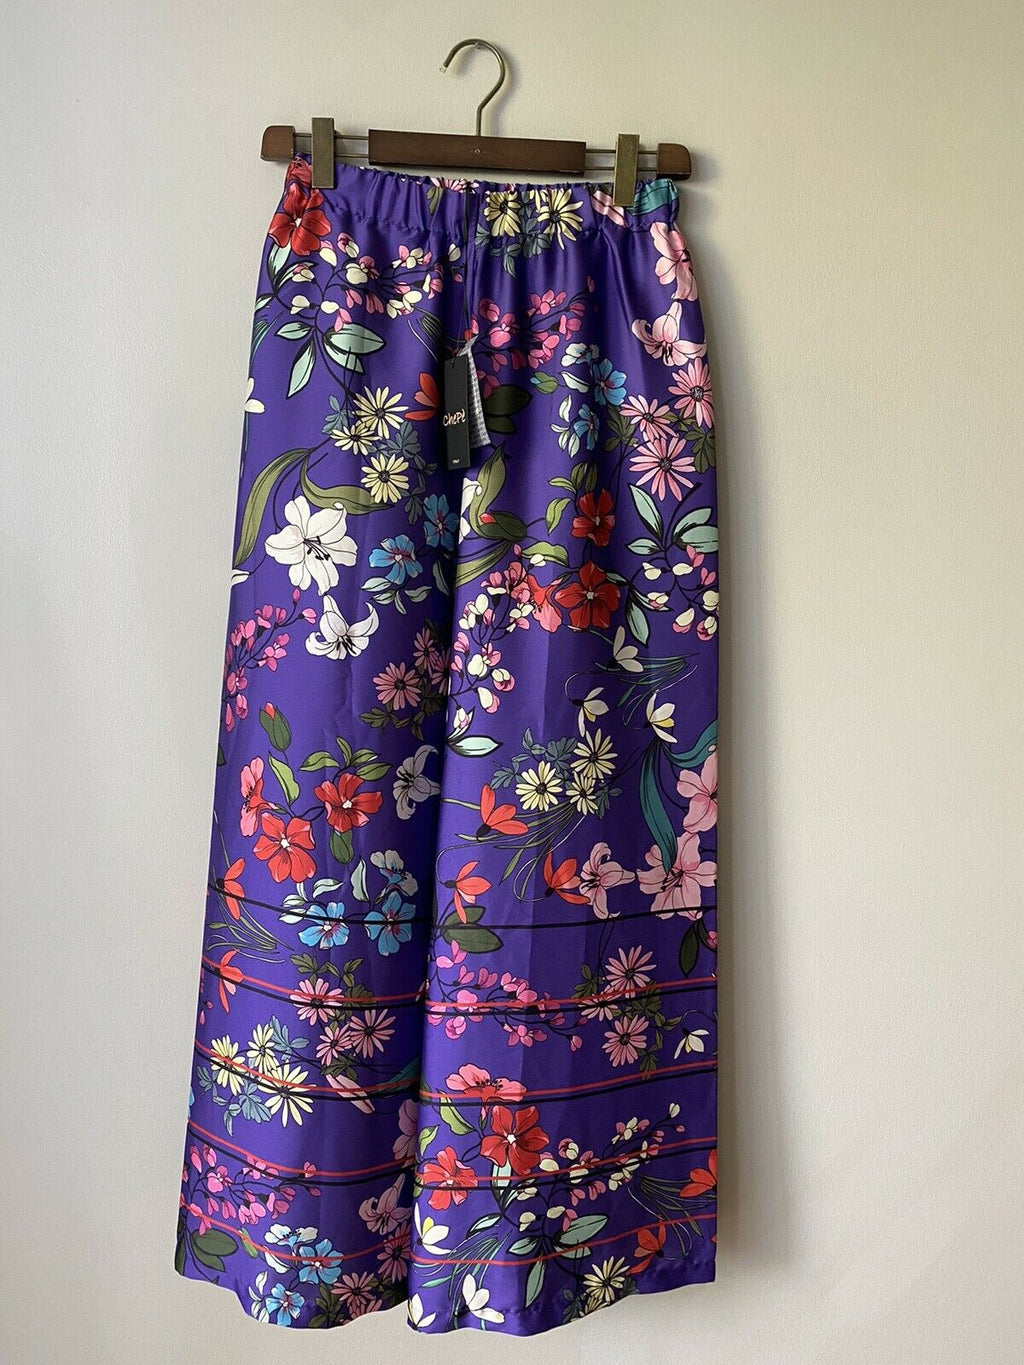 Chepe Italy Women's Large Purple Trousers Floral Satin Elastic Waist Pants NWT